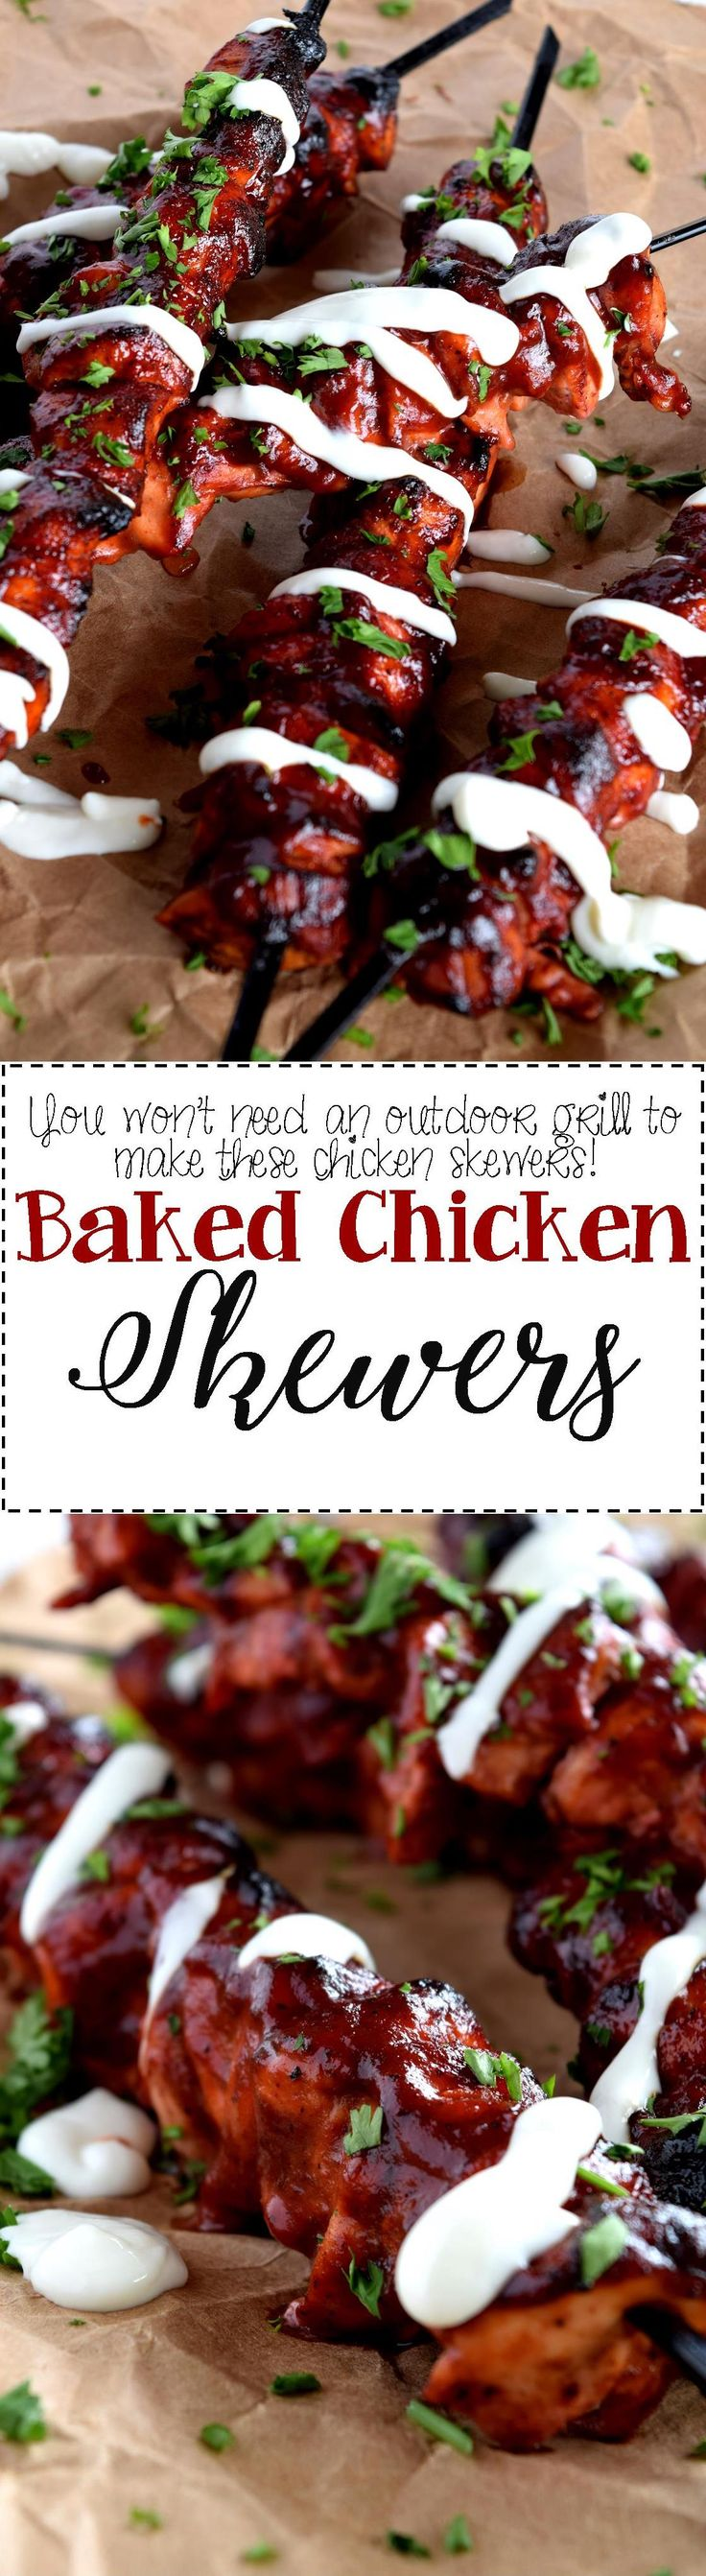 Baked Chicken Skewers are proof that an outdoor grill is not needed to achieve great charred taste. These chicken skewers are tender, moist, and flavourful; and with only four ingredients and 35 minutes, you can enjoy the taste of summer anytime!